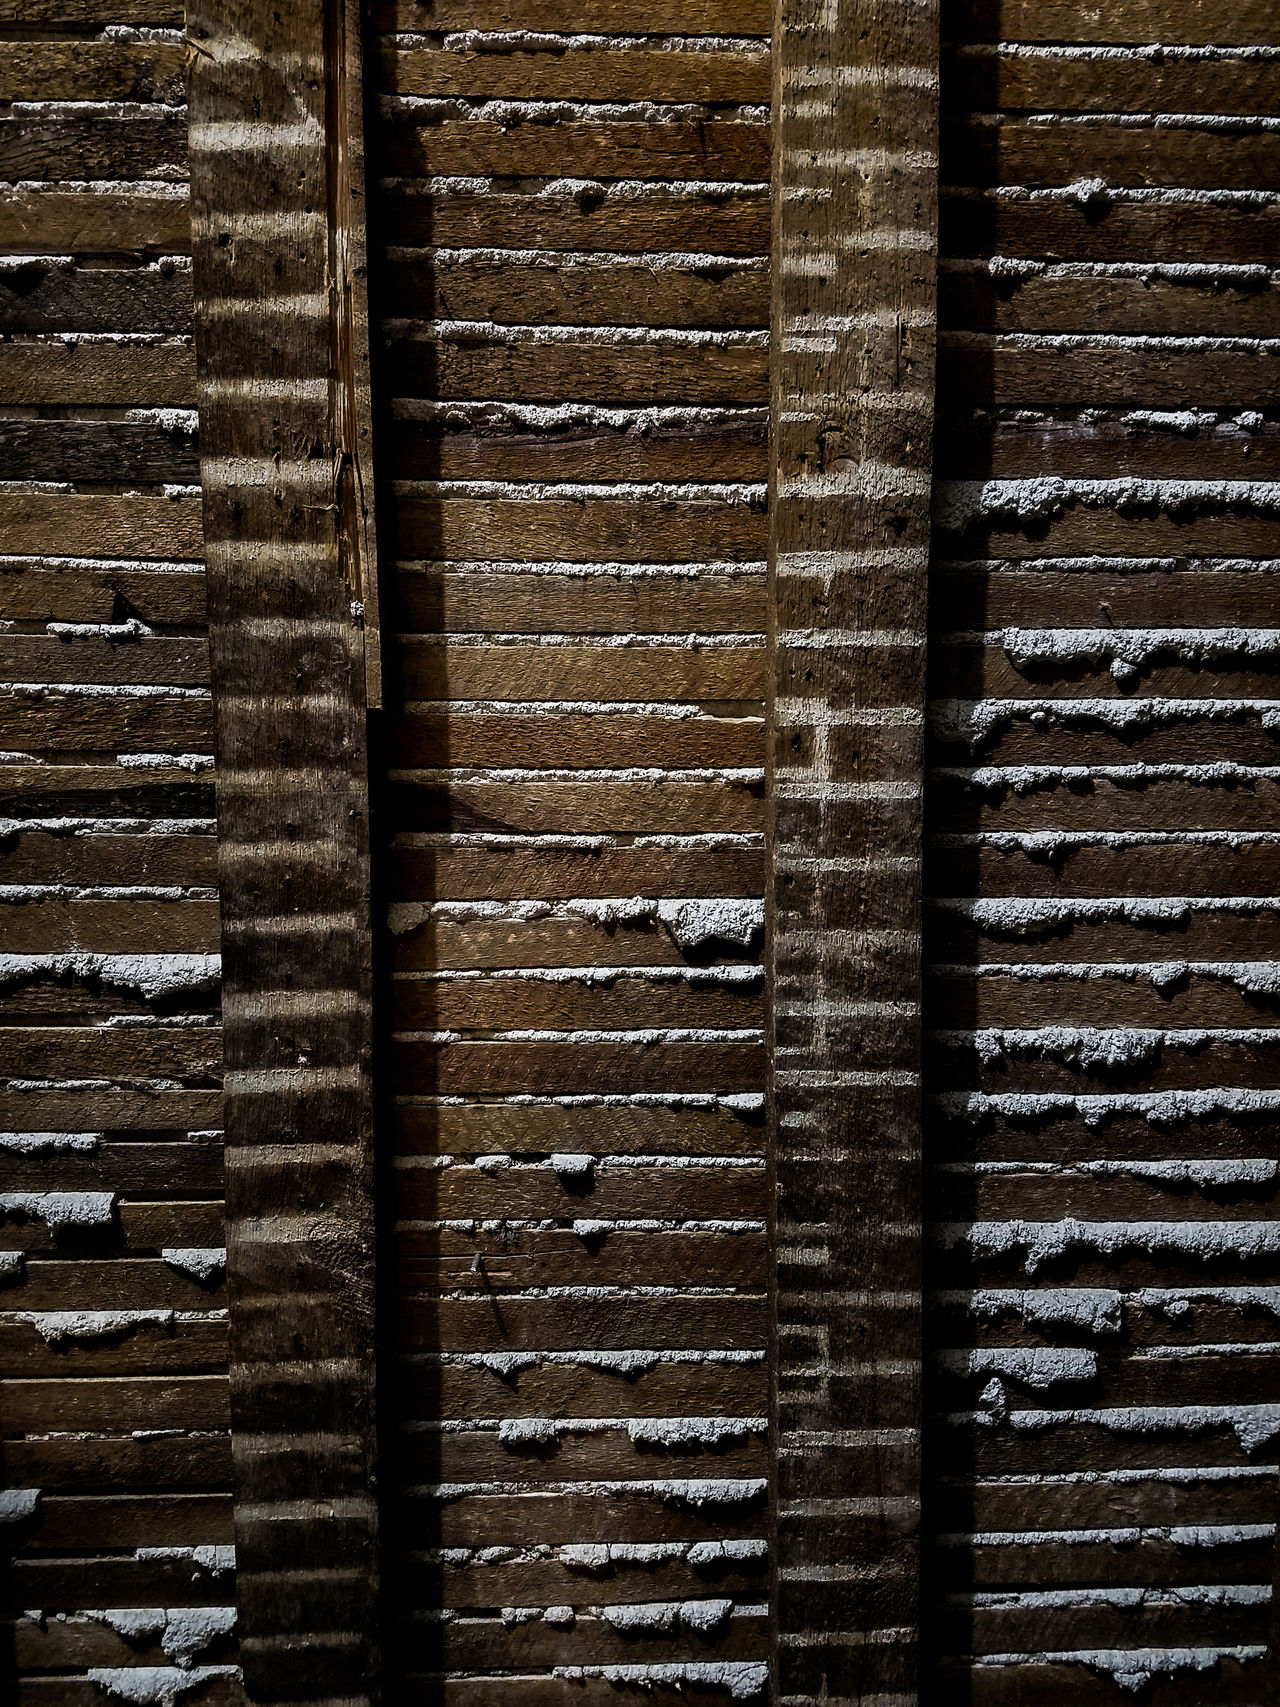 Backgrounds Full Frame Pattern No People Textured  Indoors  Day Architecture Old Demolition Tare Down The Wall Building Materials Different Perspective Erie Buildingstyles Building Interior Building Structures Building Cement Wall Wood - Material Wood Construction Site Construction Background